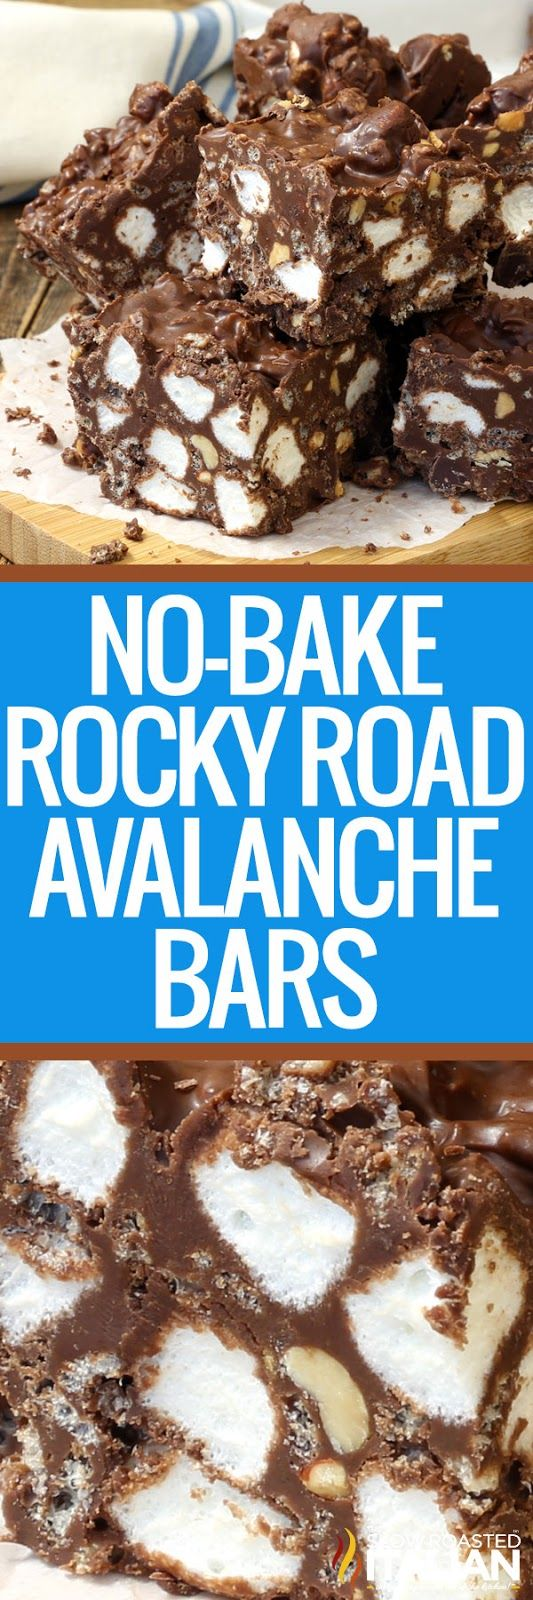 No-Bake Rocky Road Avalanche Bars are my latest obsession.  A simple recipe with chocolate and peanut butter with a candy crunch that comes together in a snap? Sign me up, twice!